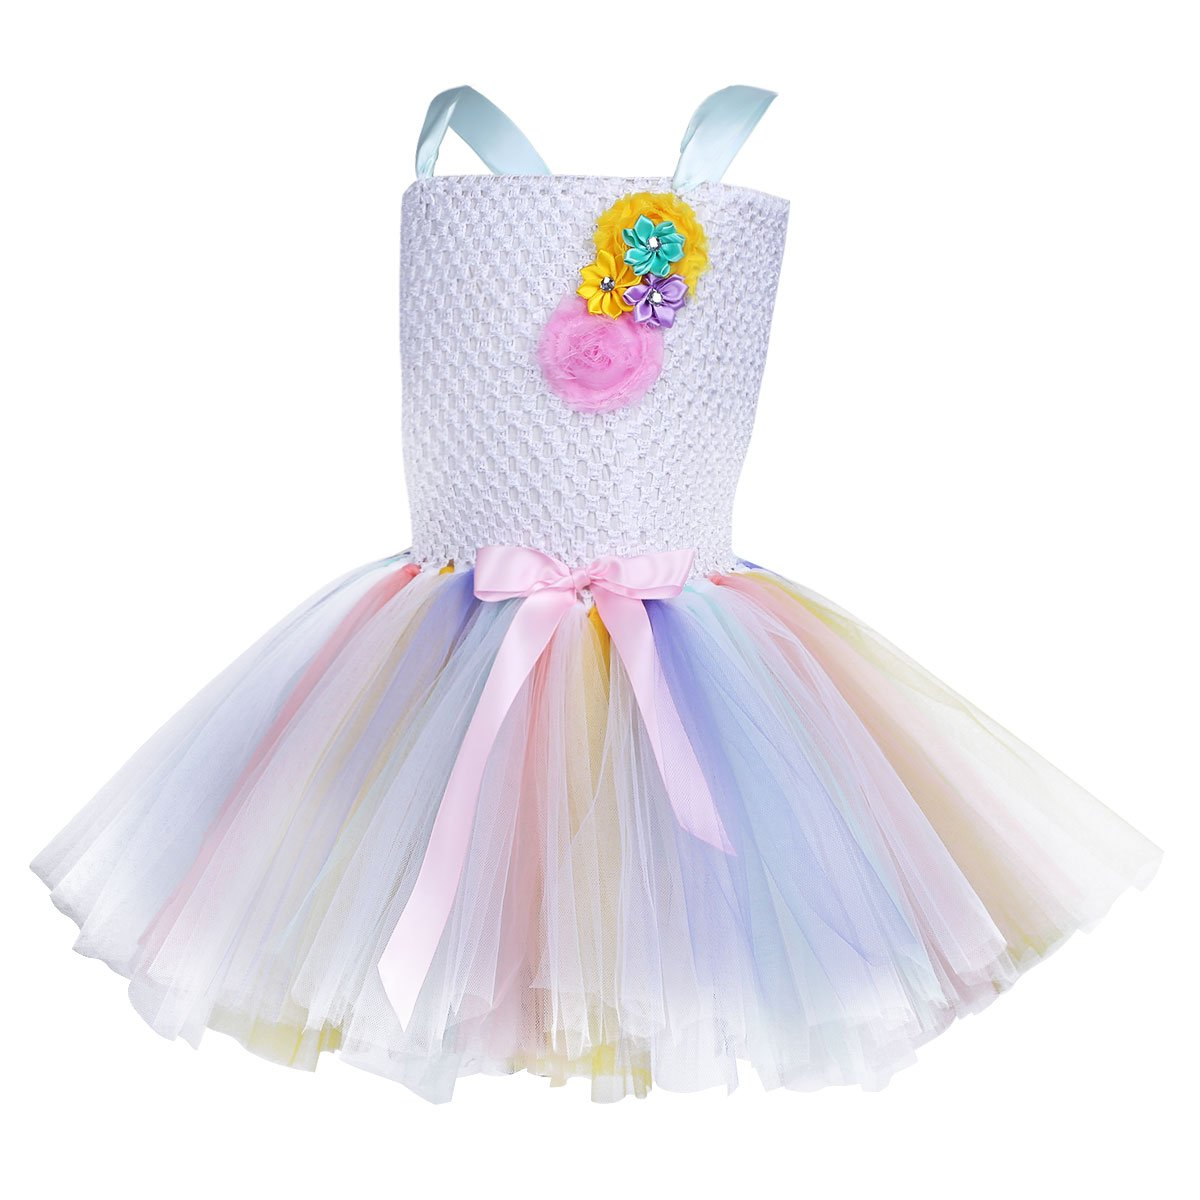 Amazon.com: iEFiEL Girls Ballet Tutu Tulle Dress Birthday Party Costume Kids Princess Pageant Wedding Bridesmaid Dress: Clothing